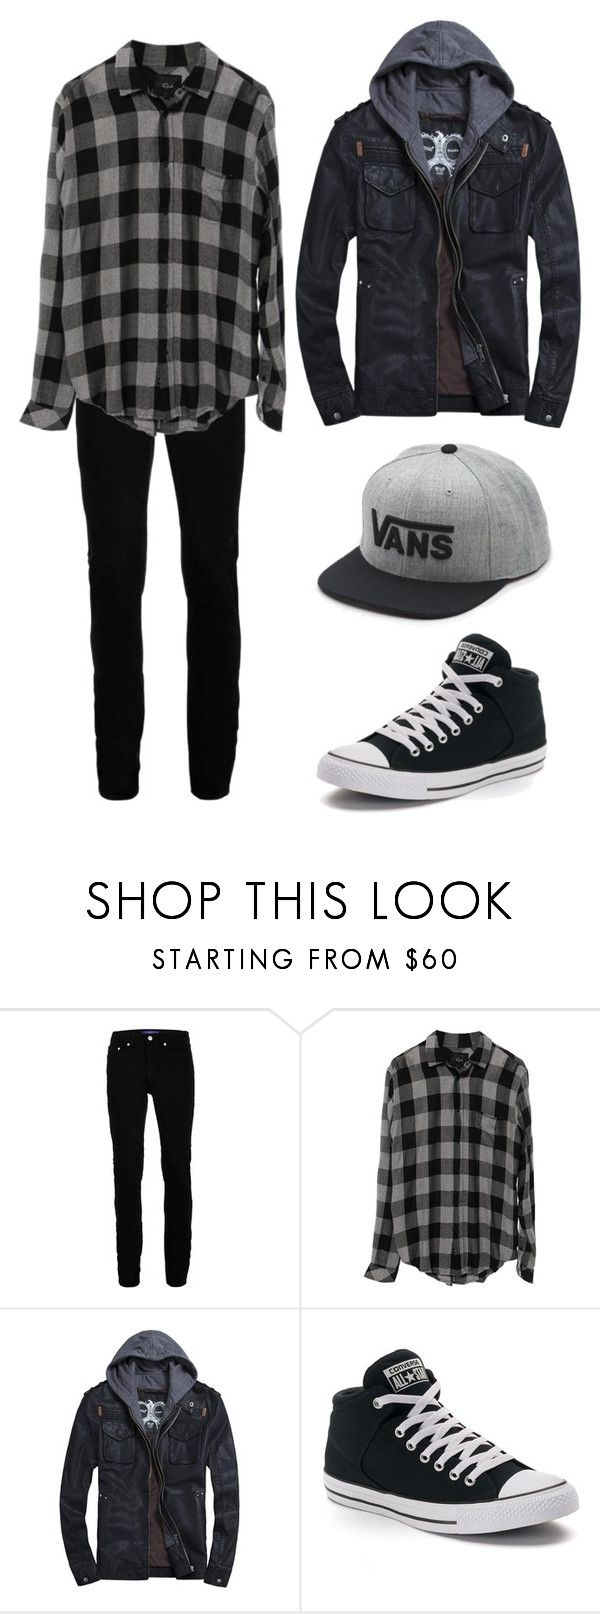 """""""Guys outfit for anon"""" by edgy-penguin33 ❤ liked on Polyvore featuring Topman, Converse, Vans, men's fashion and menswear"""